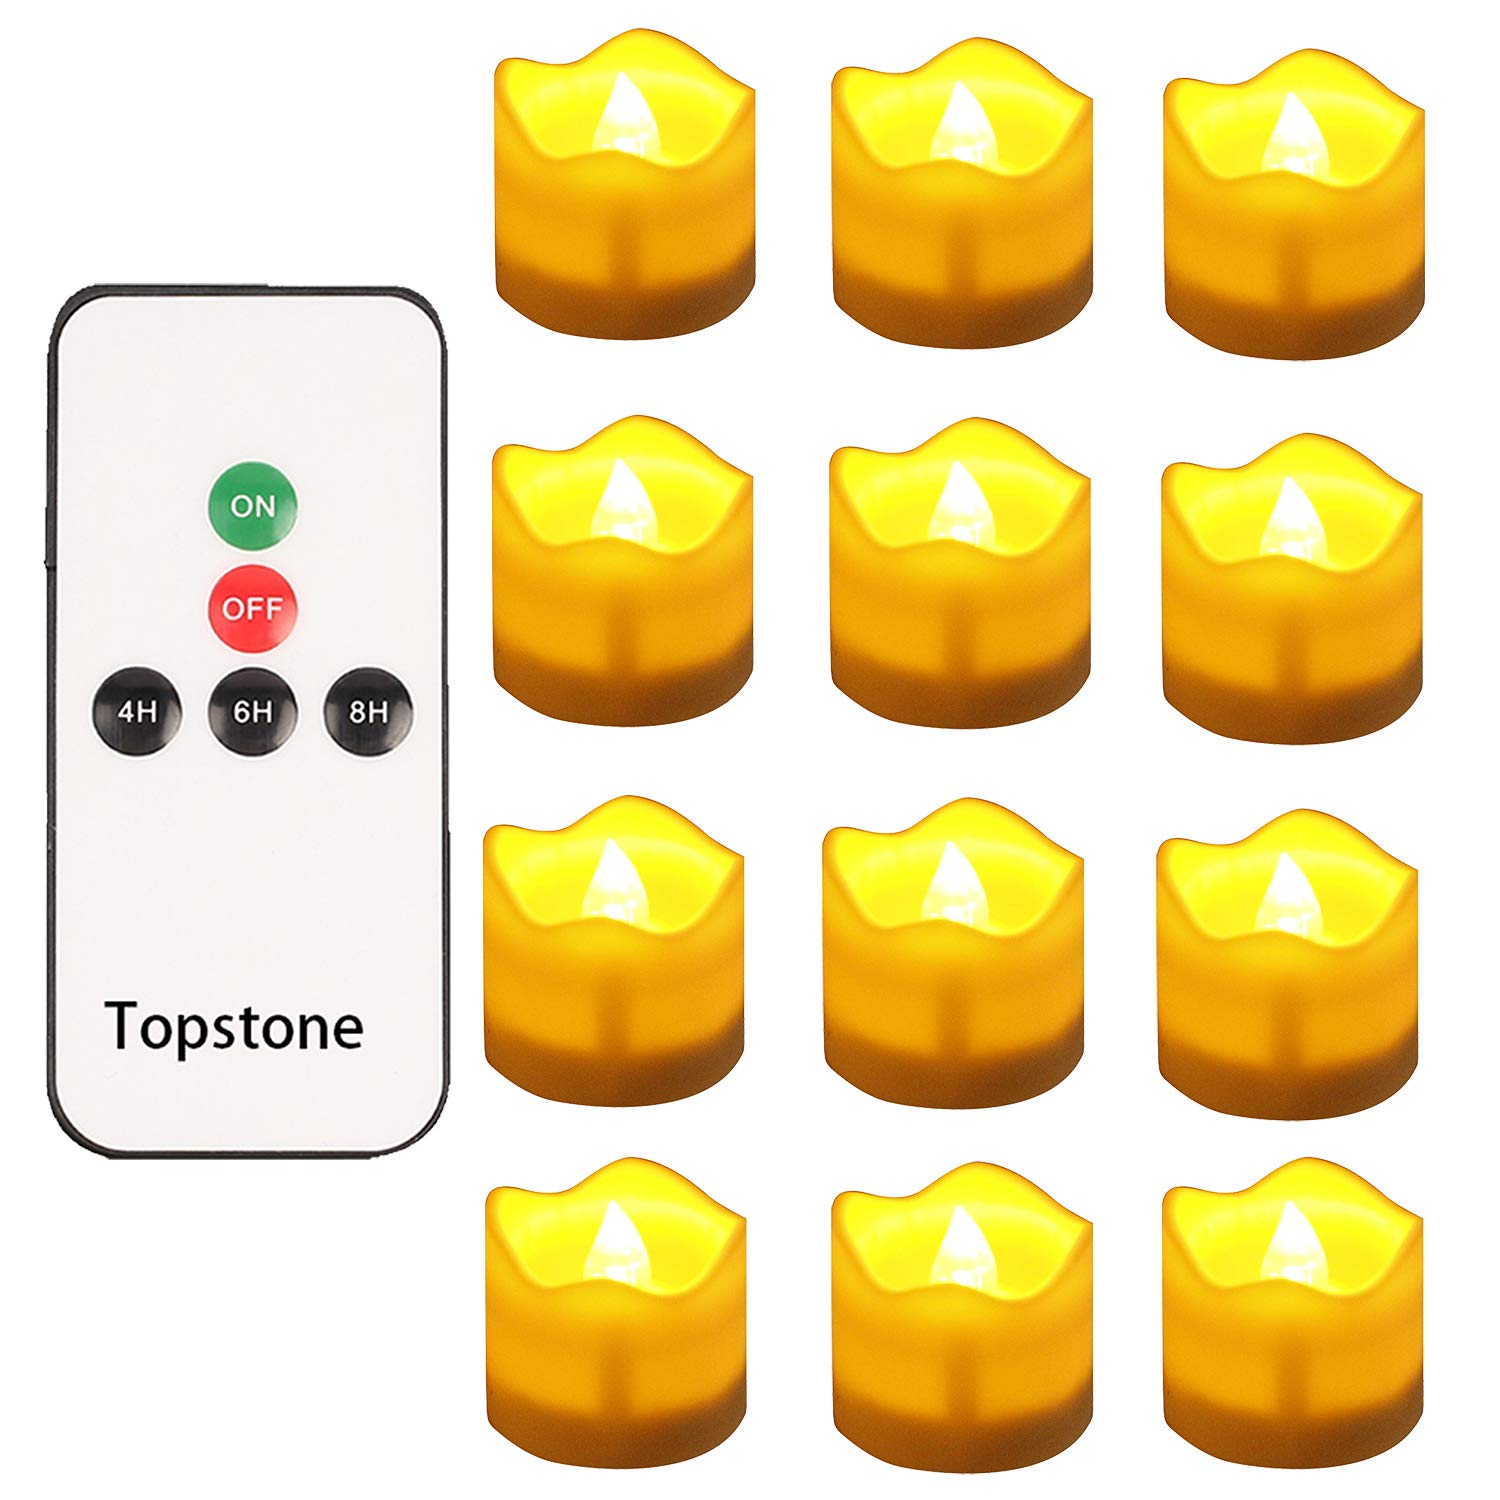 Topstone Remote contorl Tealights with Timer,Battery Operated Flameless Candle with Flickering Amber Bulb,Electric Tea Light in Wave Open,Best for Holiday Decoration,Wedding,Pack of 12